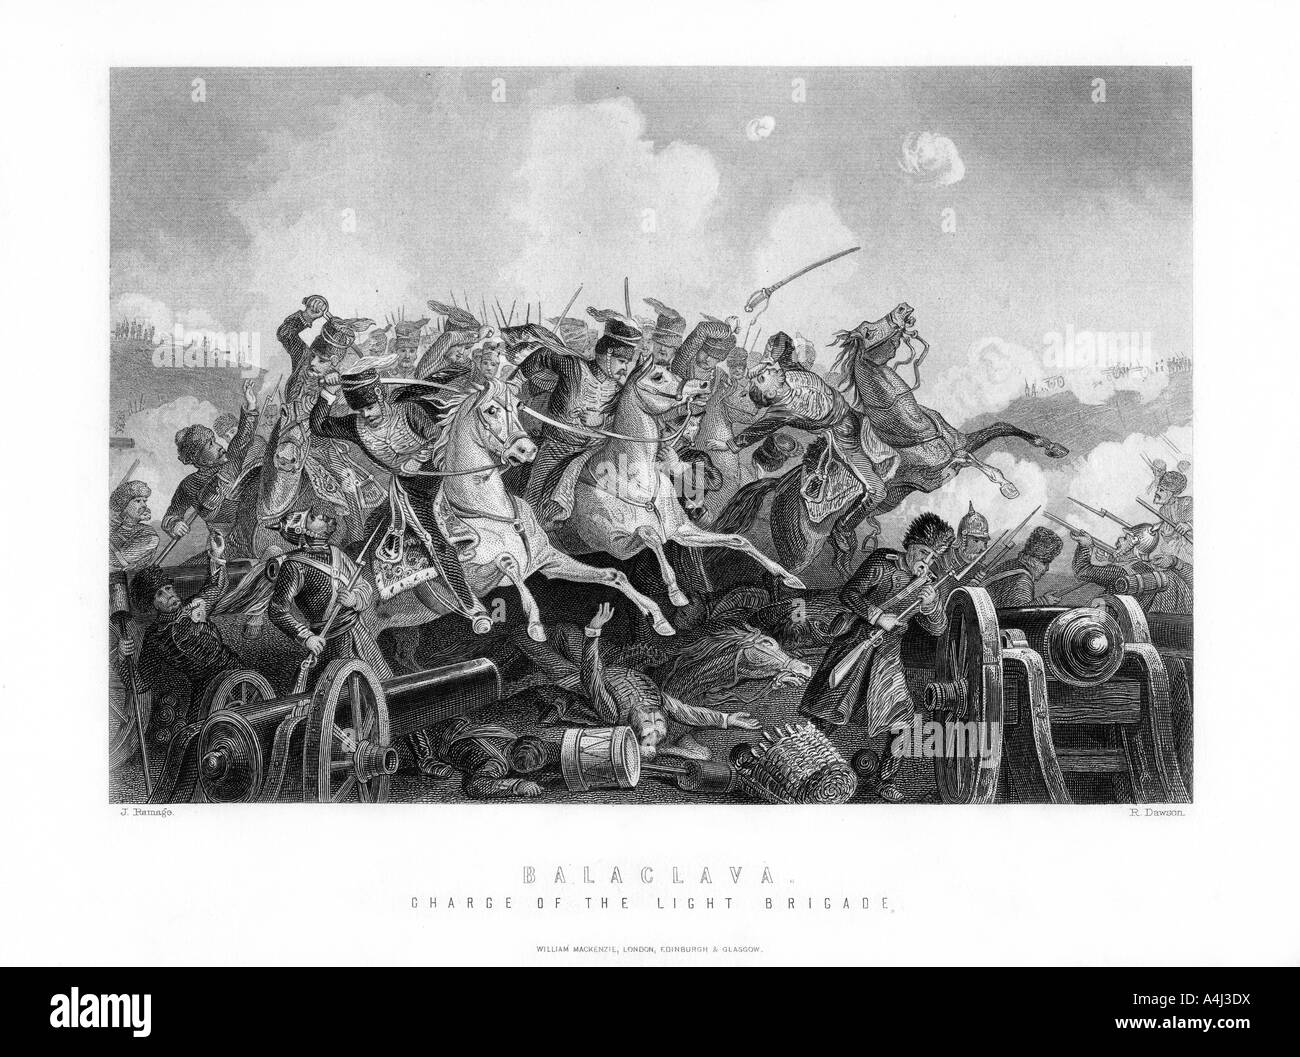 The Charge of the Light Brigade Battle of Balaclava Crimean War October 25 1854 1893  - Stock Image